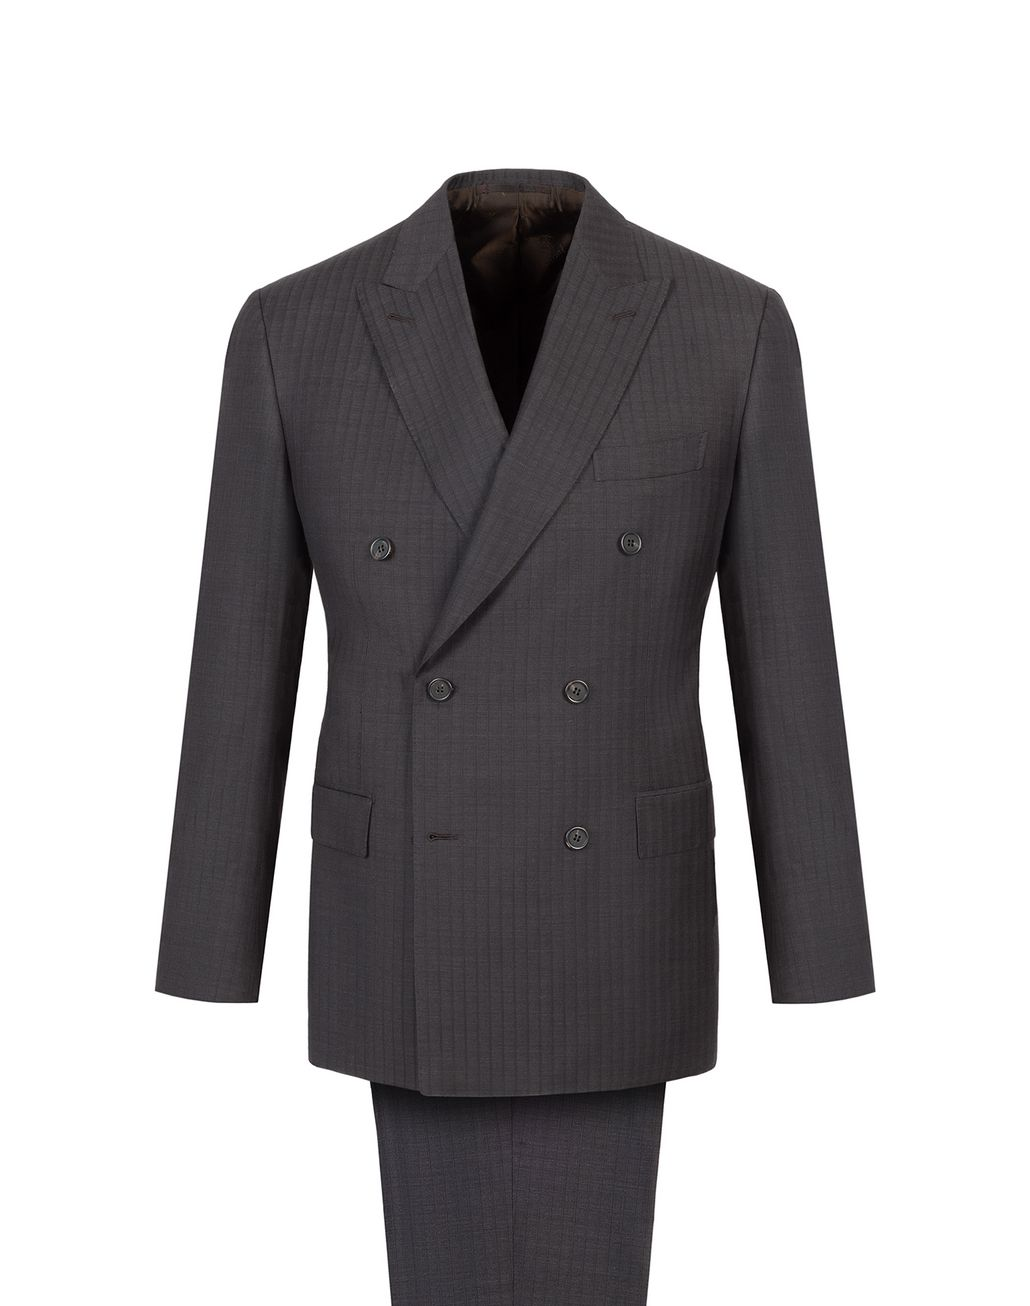 BRIONI Grey and Dark Brown Striped Madison Double Breasted Suit Suits & Jackets U f